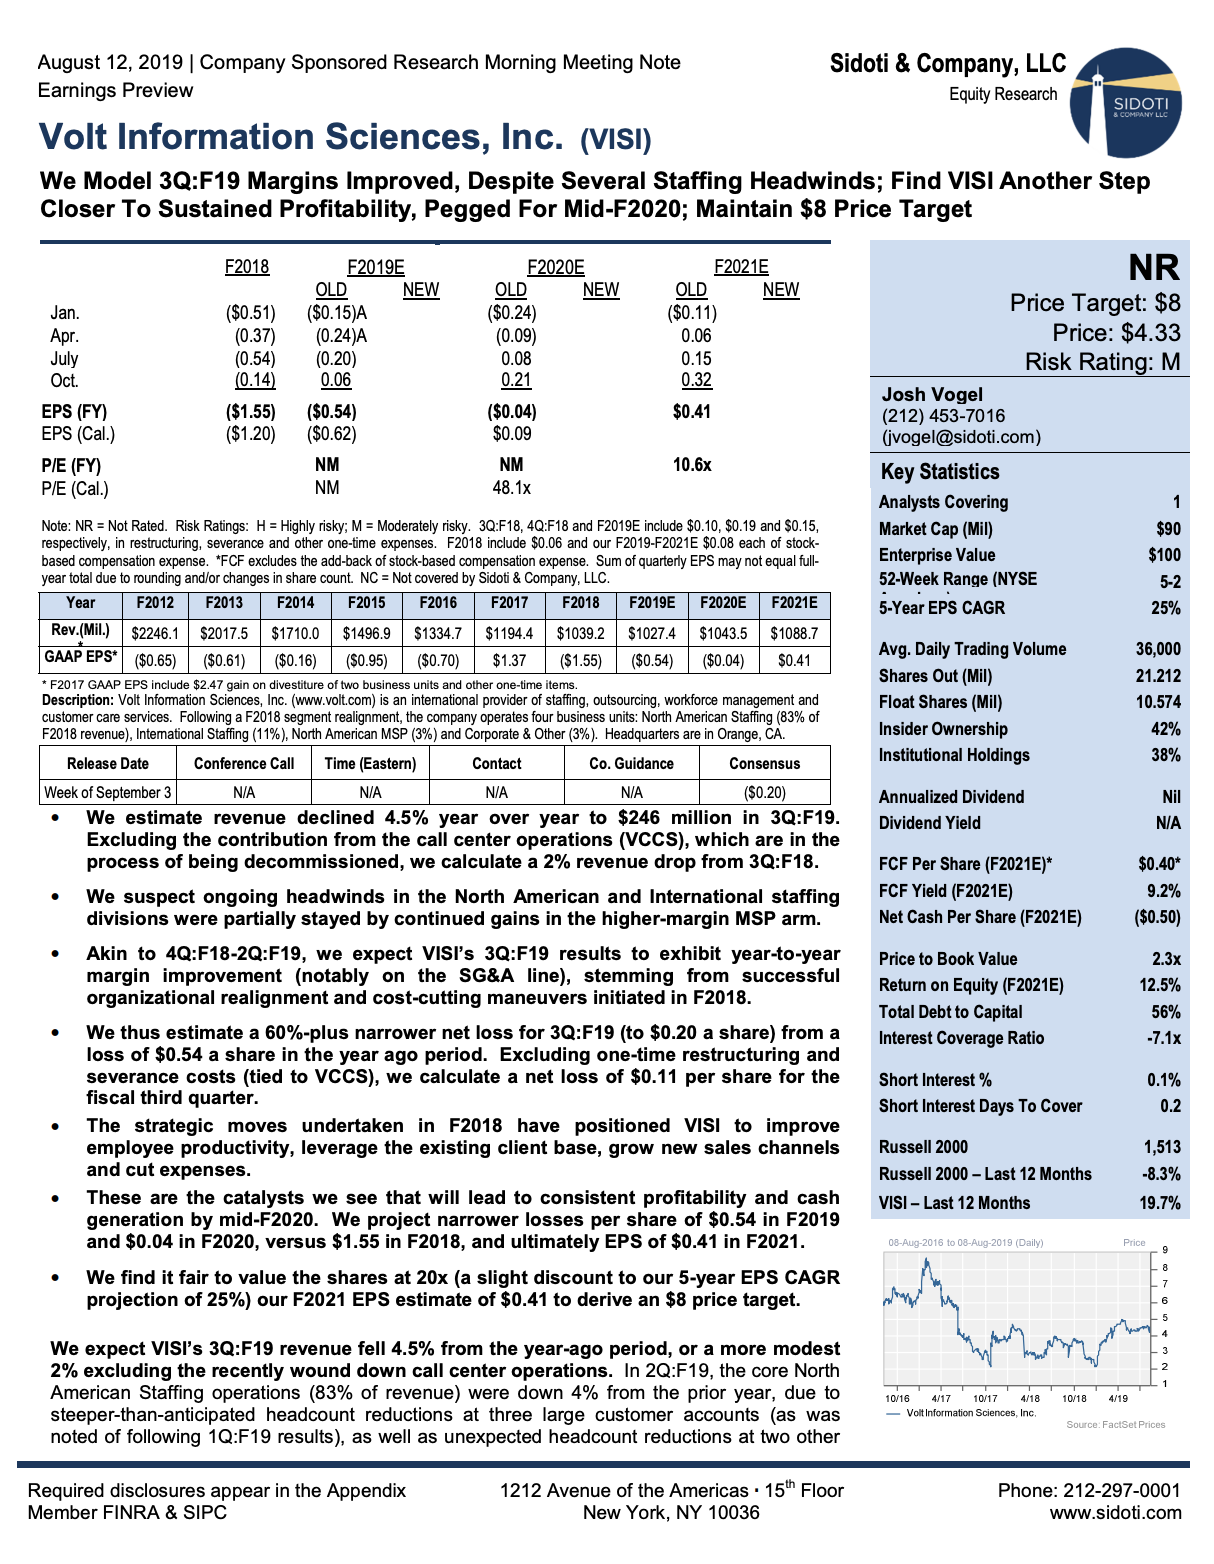 Earnings Preview:  August 12, 2019